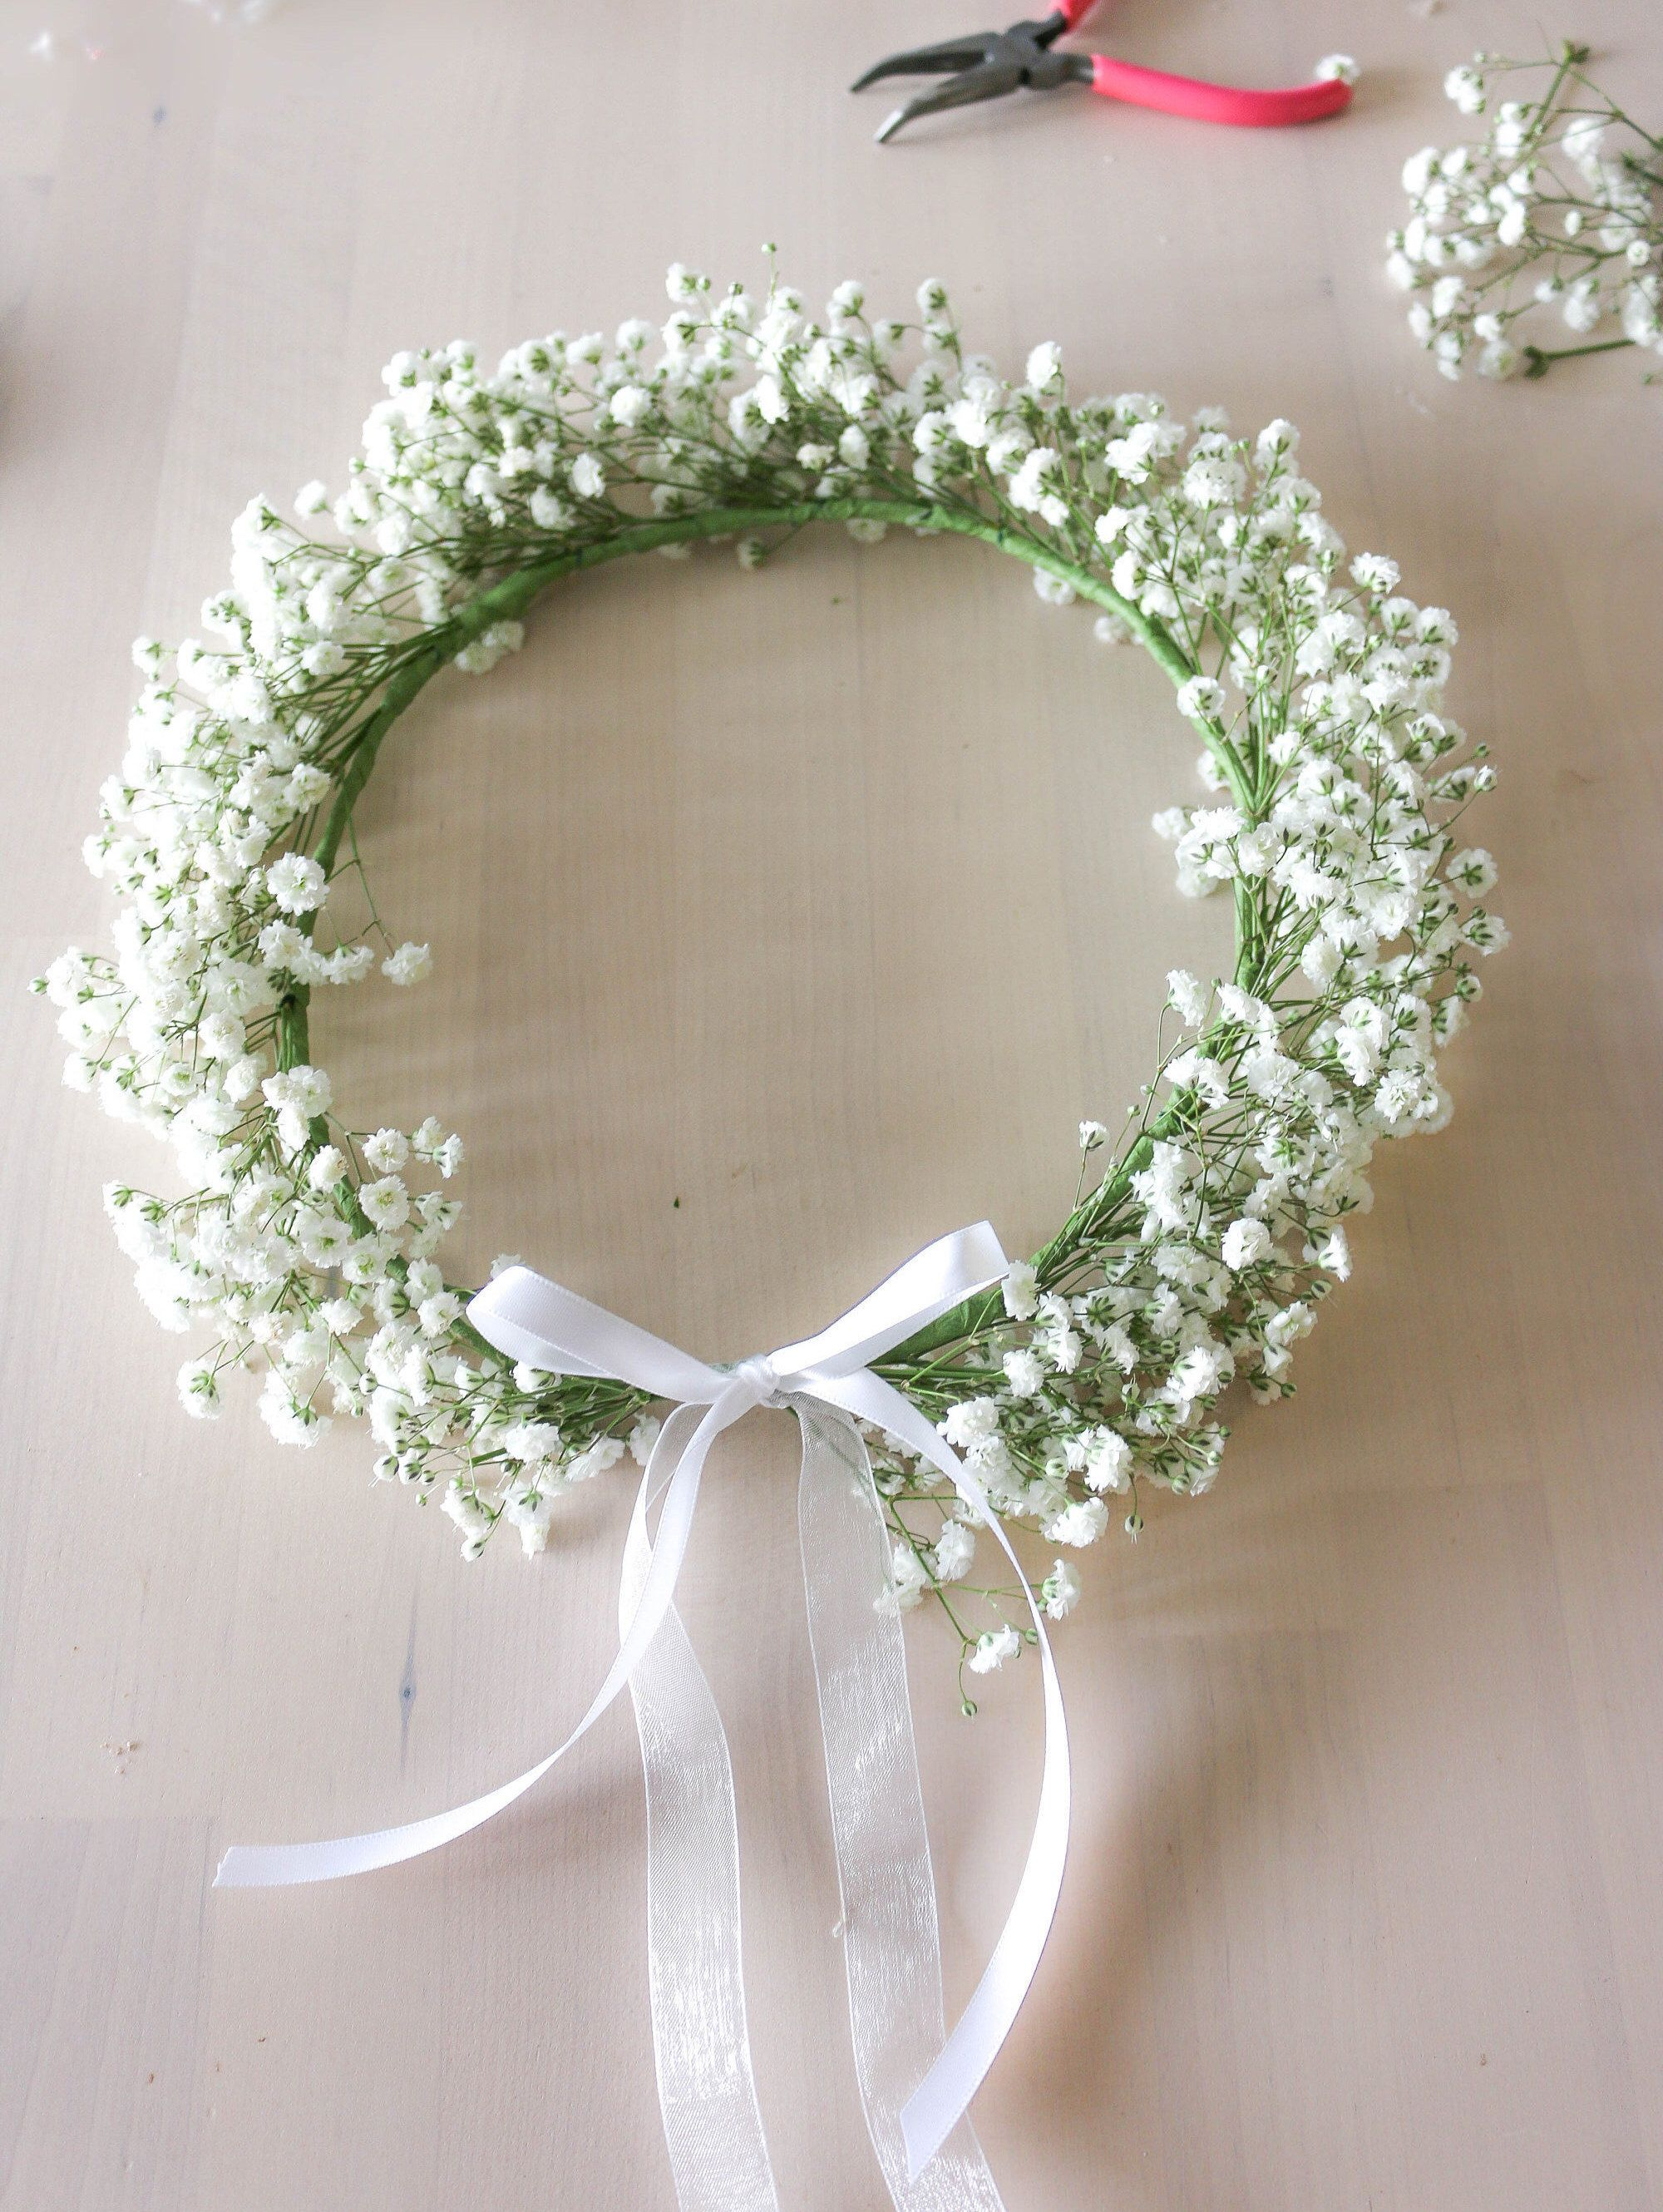 Babies Breath Flower Crown Made With Real Baby S Breath Flowers Dried Baby S Breath Floral Halo Photo Props Rustic Crown Best Seller In 2020 Flower Crown Babys Breath Flowers Baby Breath Flower Crown